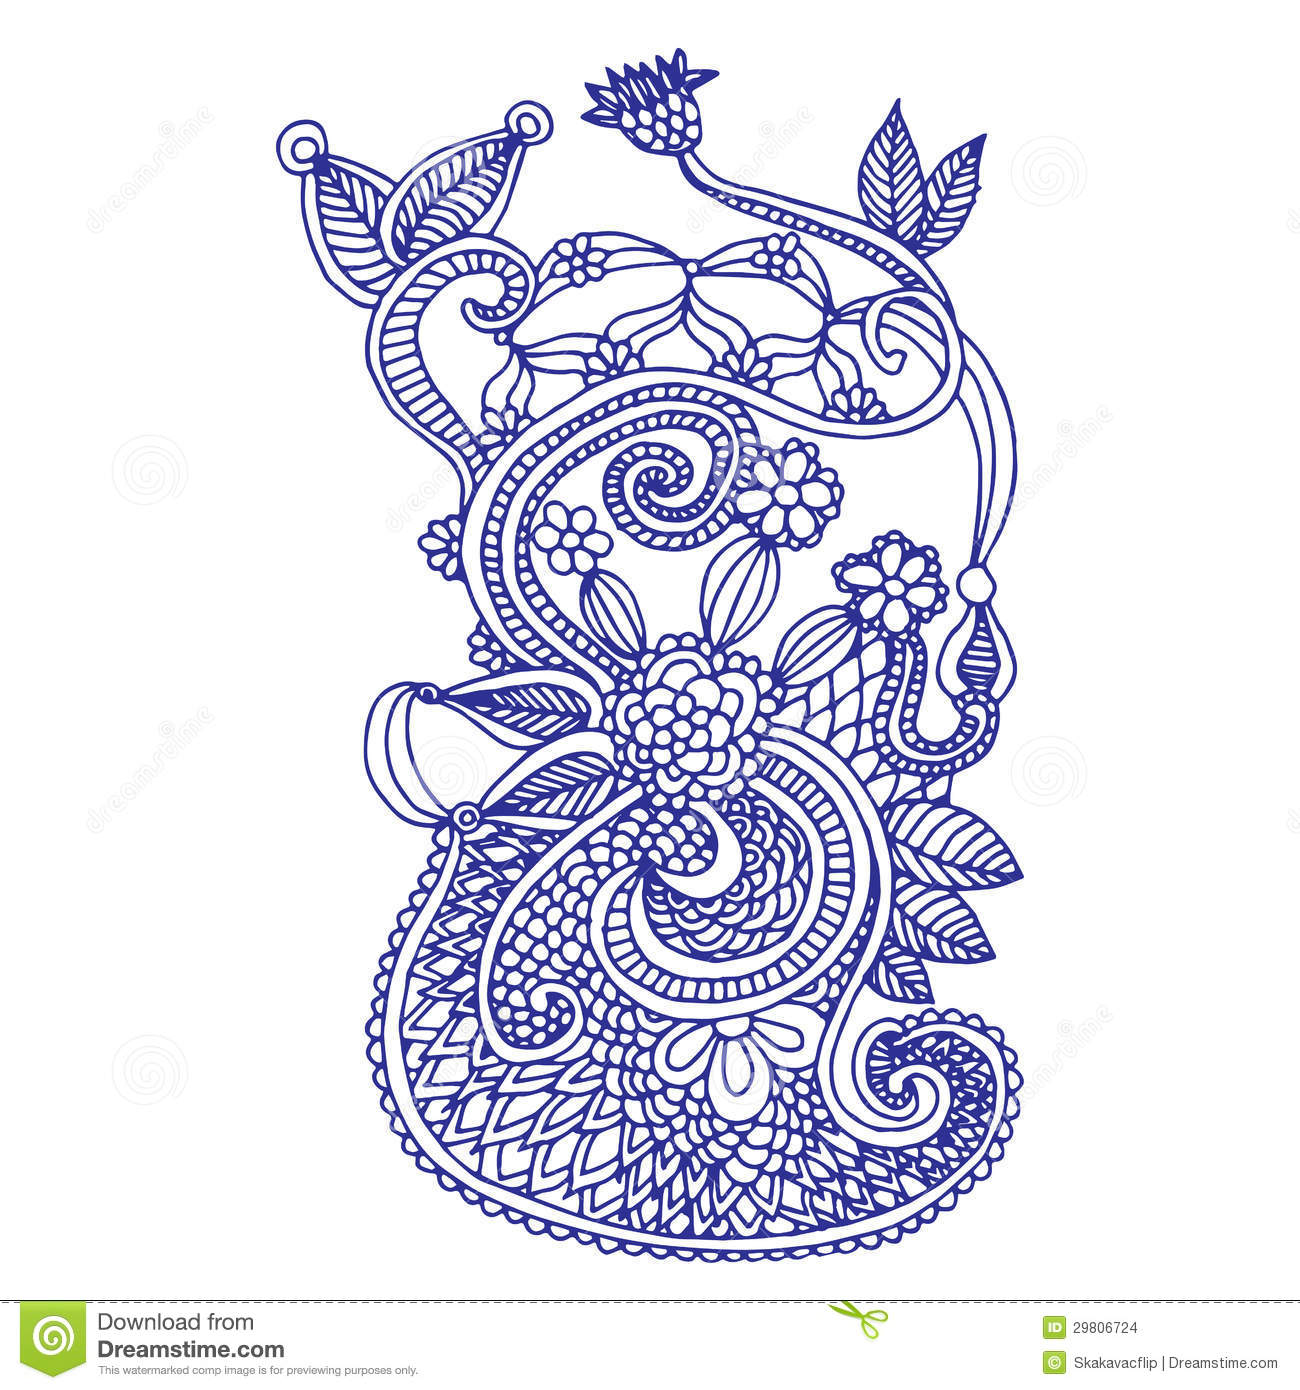 Line Art Design Flower : Neckline embroidery design stock images image